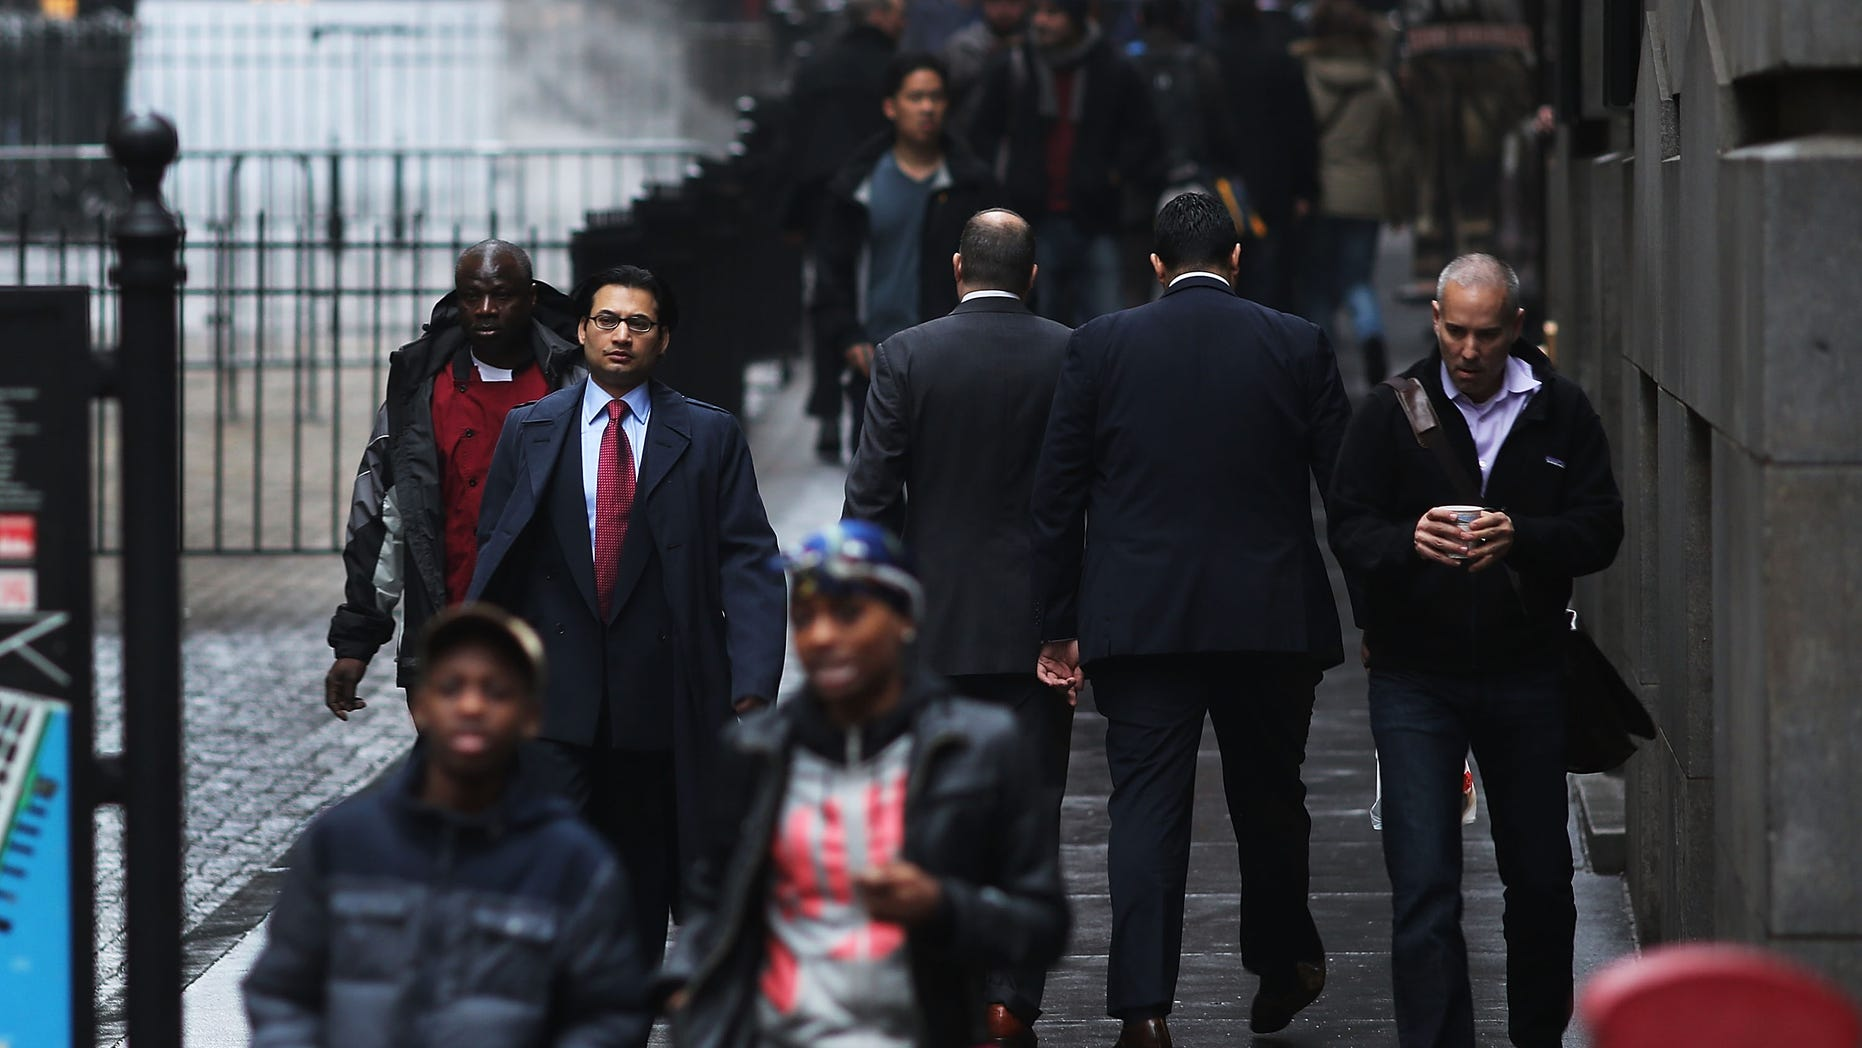 NEW YORK, NY - DECEMBER 10: People walk down Wall Street on December 10, 2012 in New York City. Stocks were little changed Monday morning as investors remained concerned over developments in Europe and ongoing fiscal cliff negotiations in Washington. The Dow Jones industrial average was up 24 points after the opening bell.  (Photo by Spencer Platt/Getty Images)